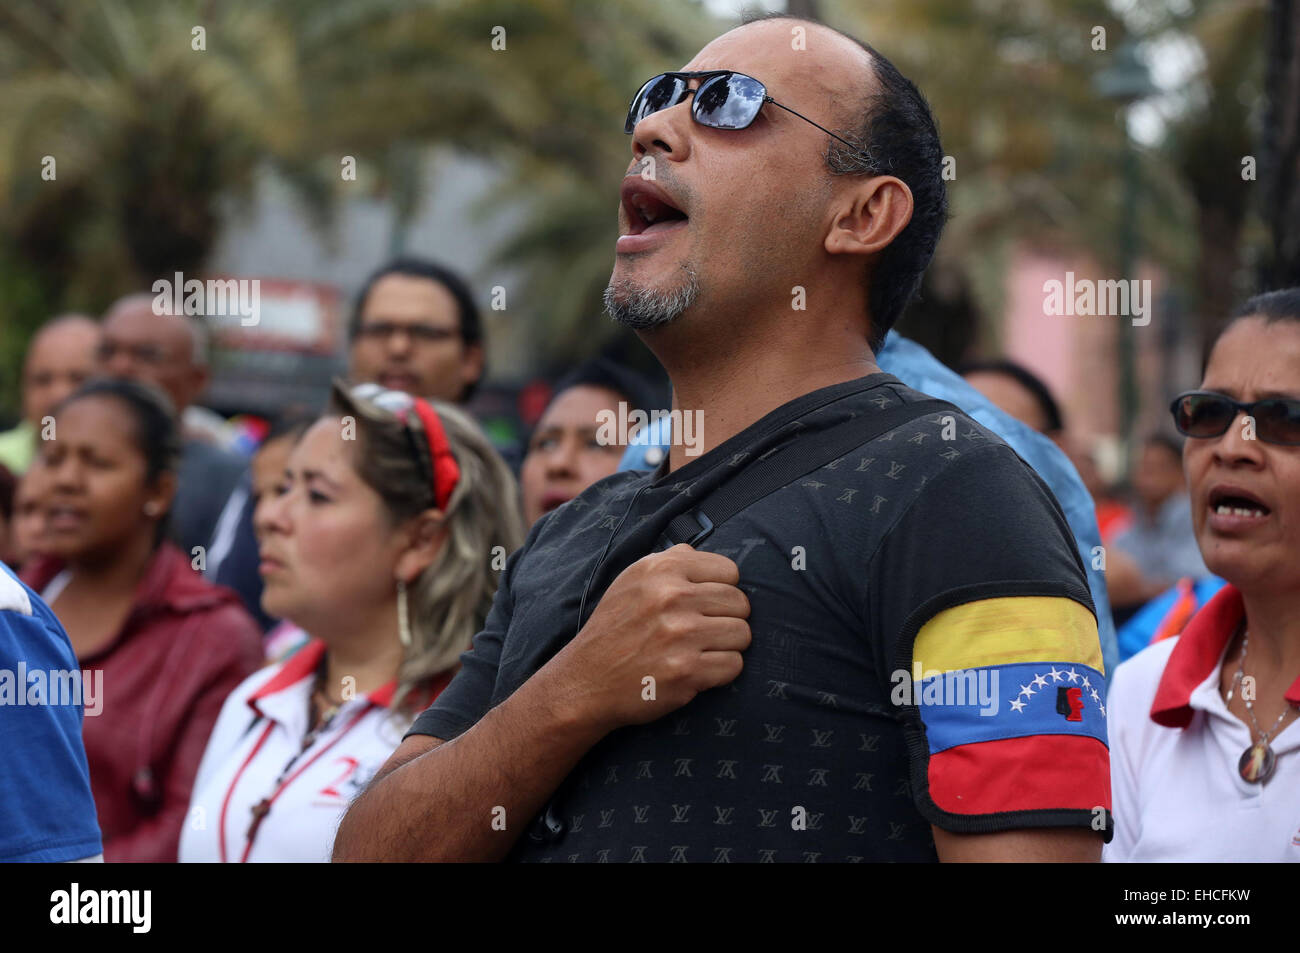 Caracas, Venezuela. 11th Mar, 2015. A person takes part in an Anti-Imperialist Tribune to show the rejection against - Stock Image